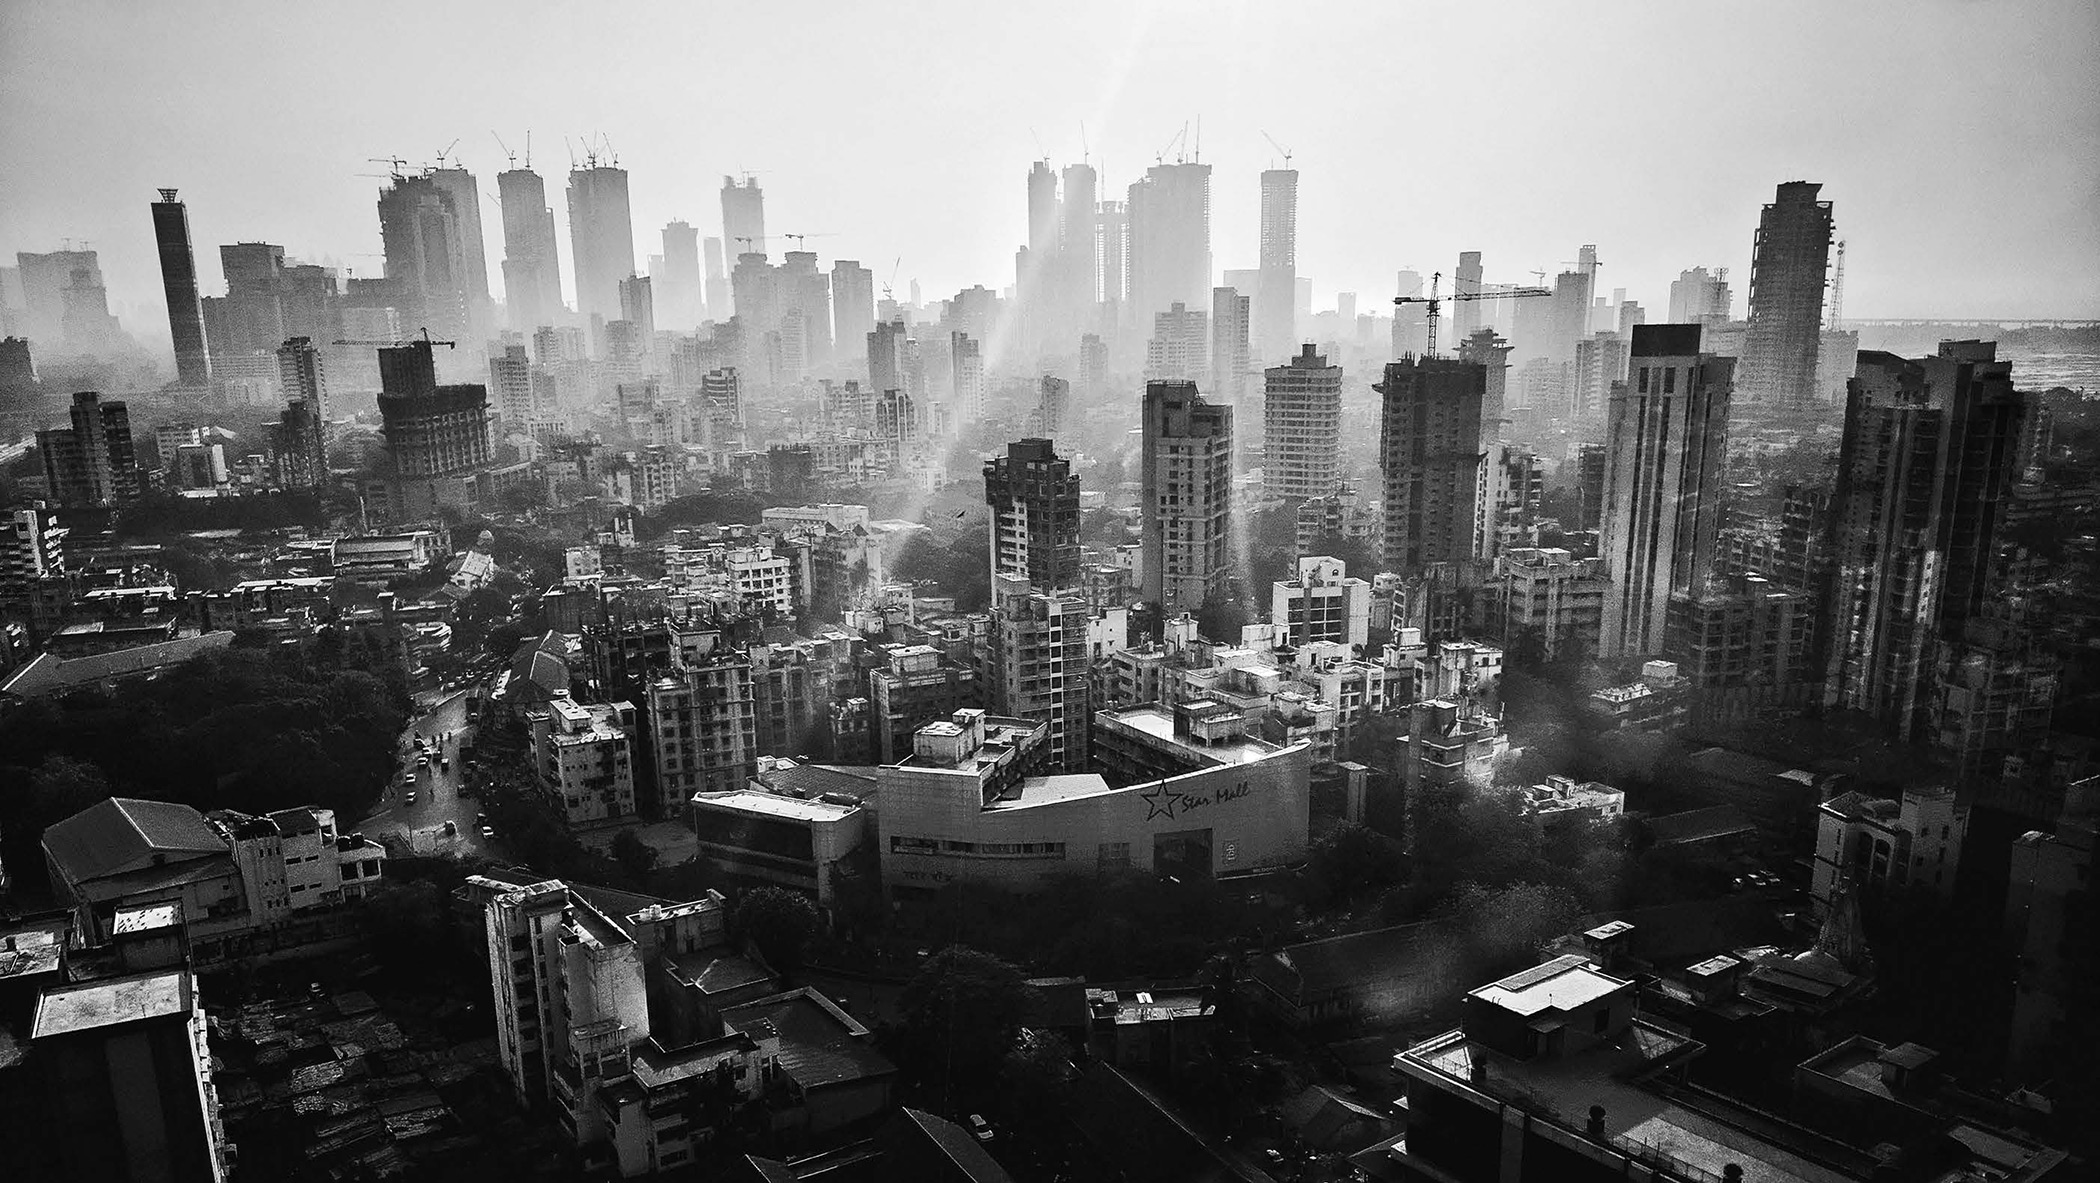 Mumbai is one of the most polluted megacities in the world.